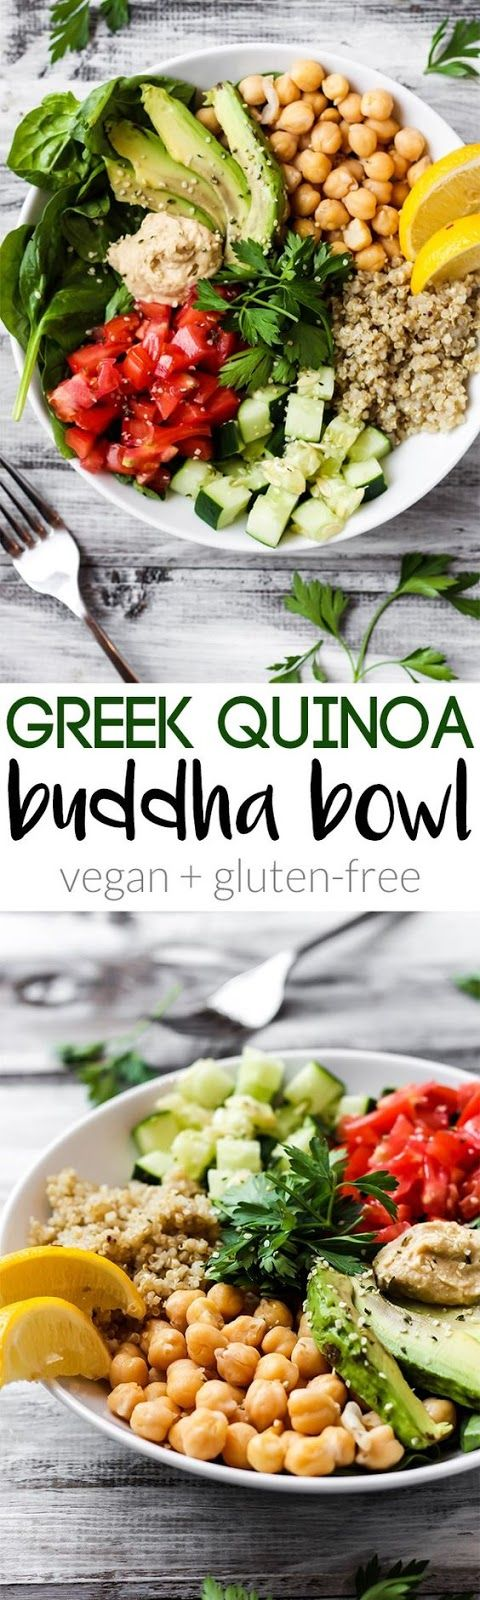 Photo of Greek Quinoa Buddha Bowl & A Special Announcement Recipe